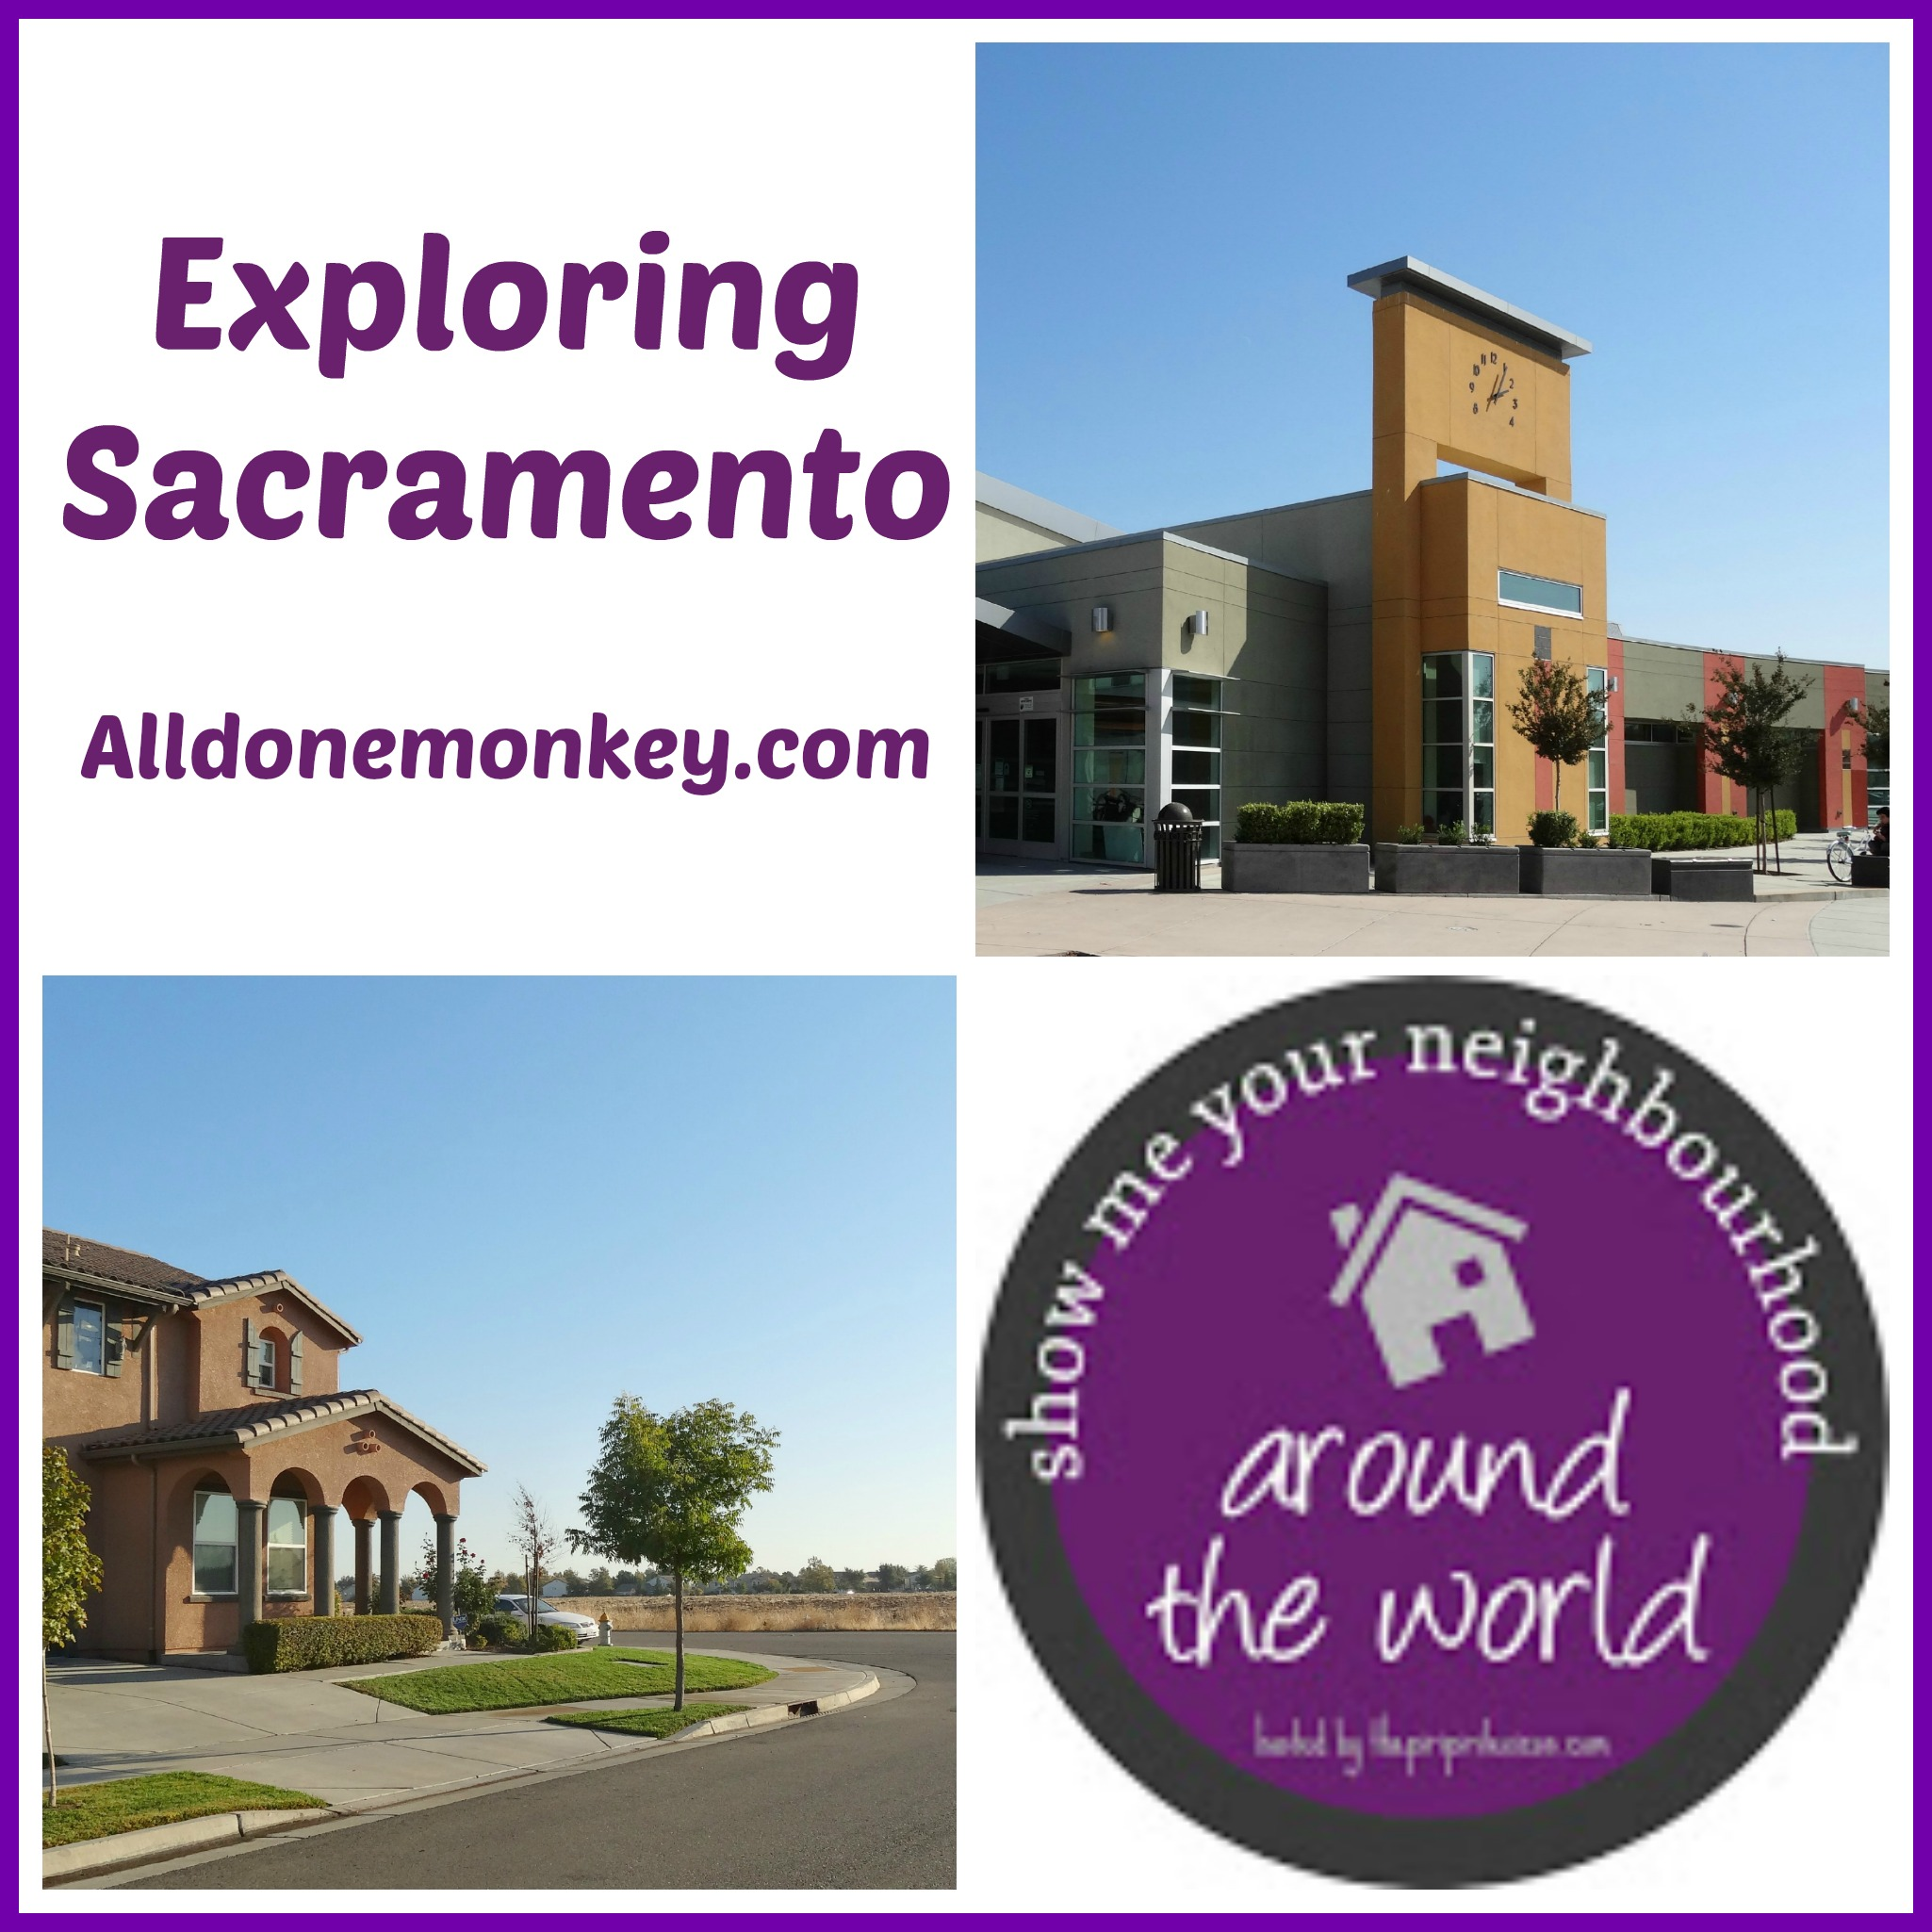 Exploring Sacramento, CA {Show Me Your Neighborhood Around the World} - Alldonemonkey.com